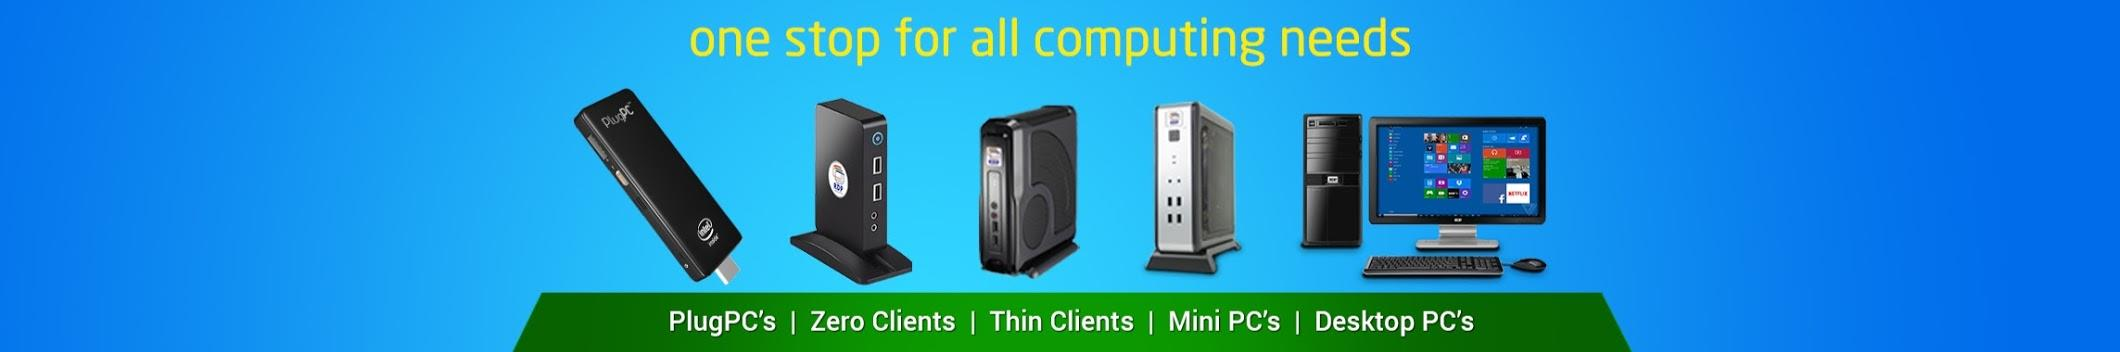 One Stop for all Computing Needs   RDP is the first among its peers with having wide range of products comprises of Thin Clients, Mini PC's, Desktop PC's & All in One PC's   Through RDP Cost Effective Computers users can get substantial benefits on Capex & Opex